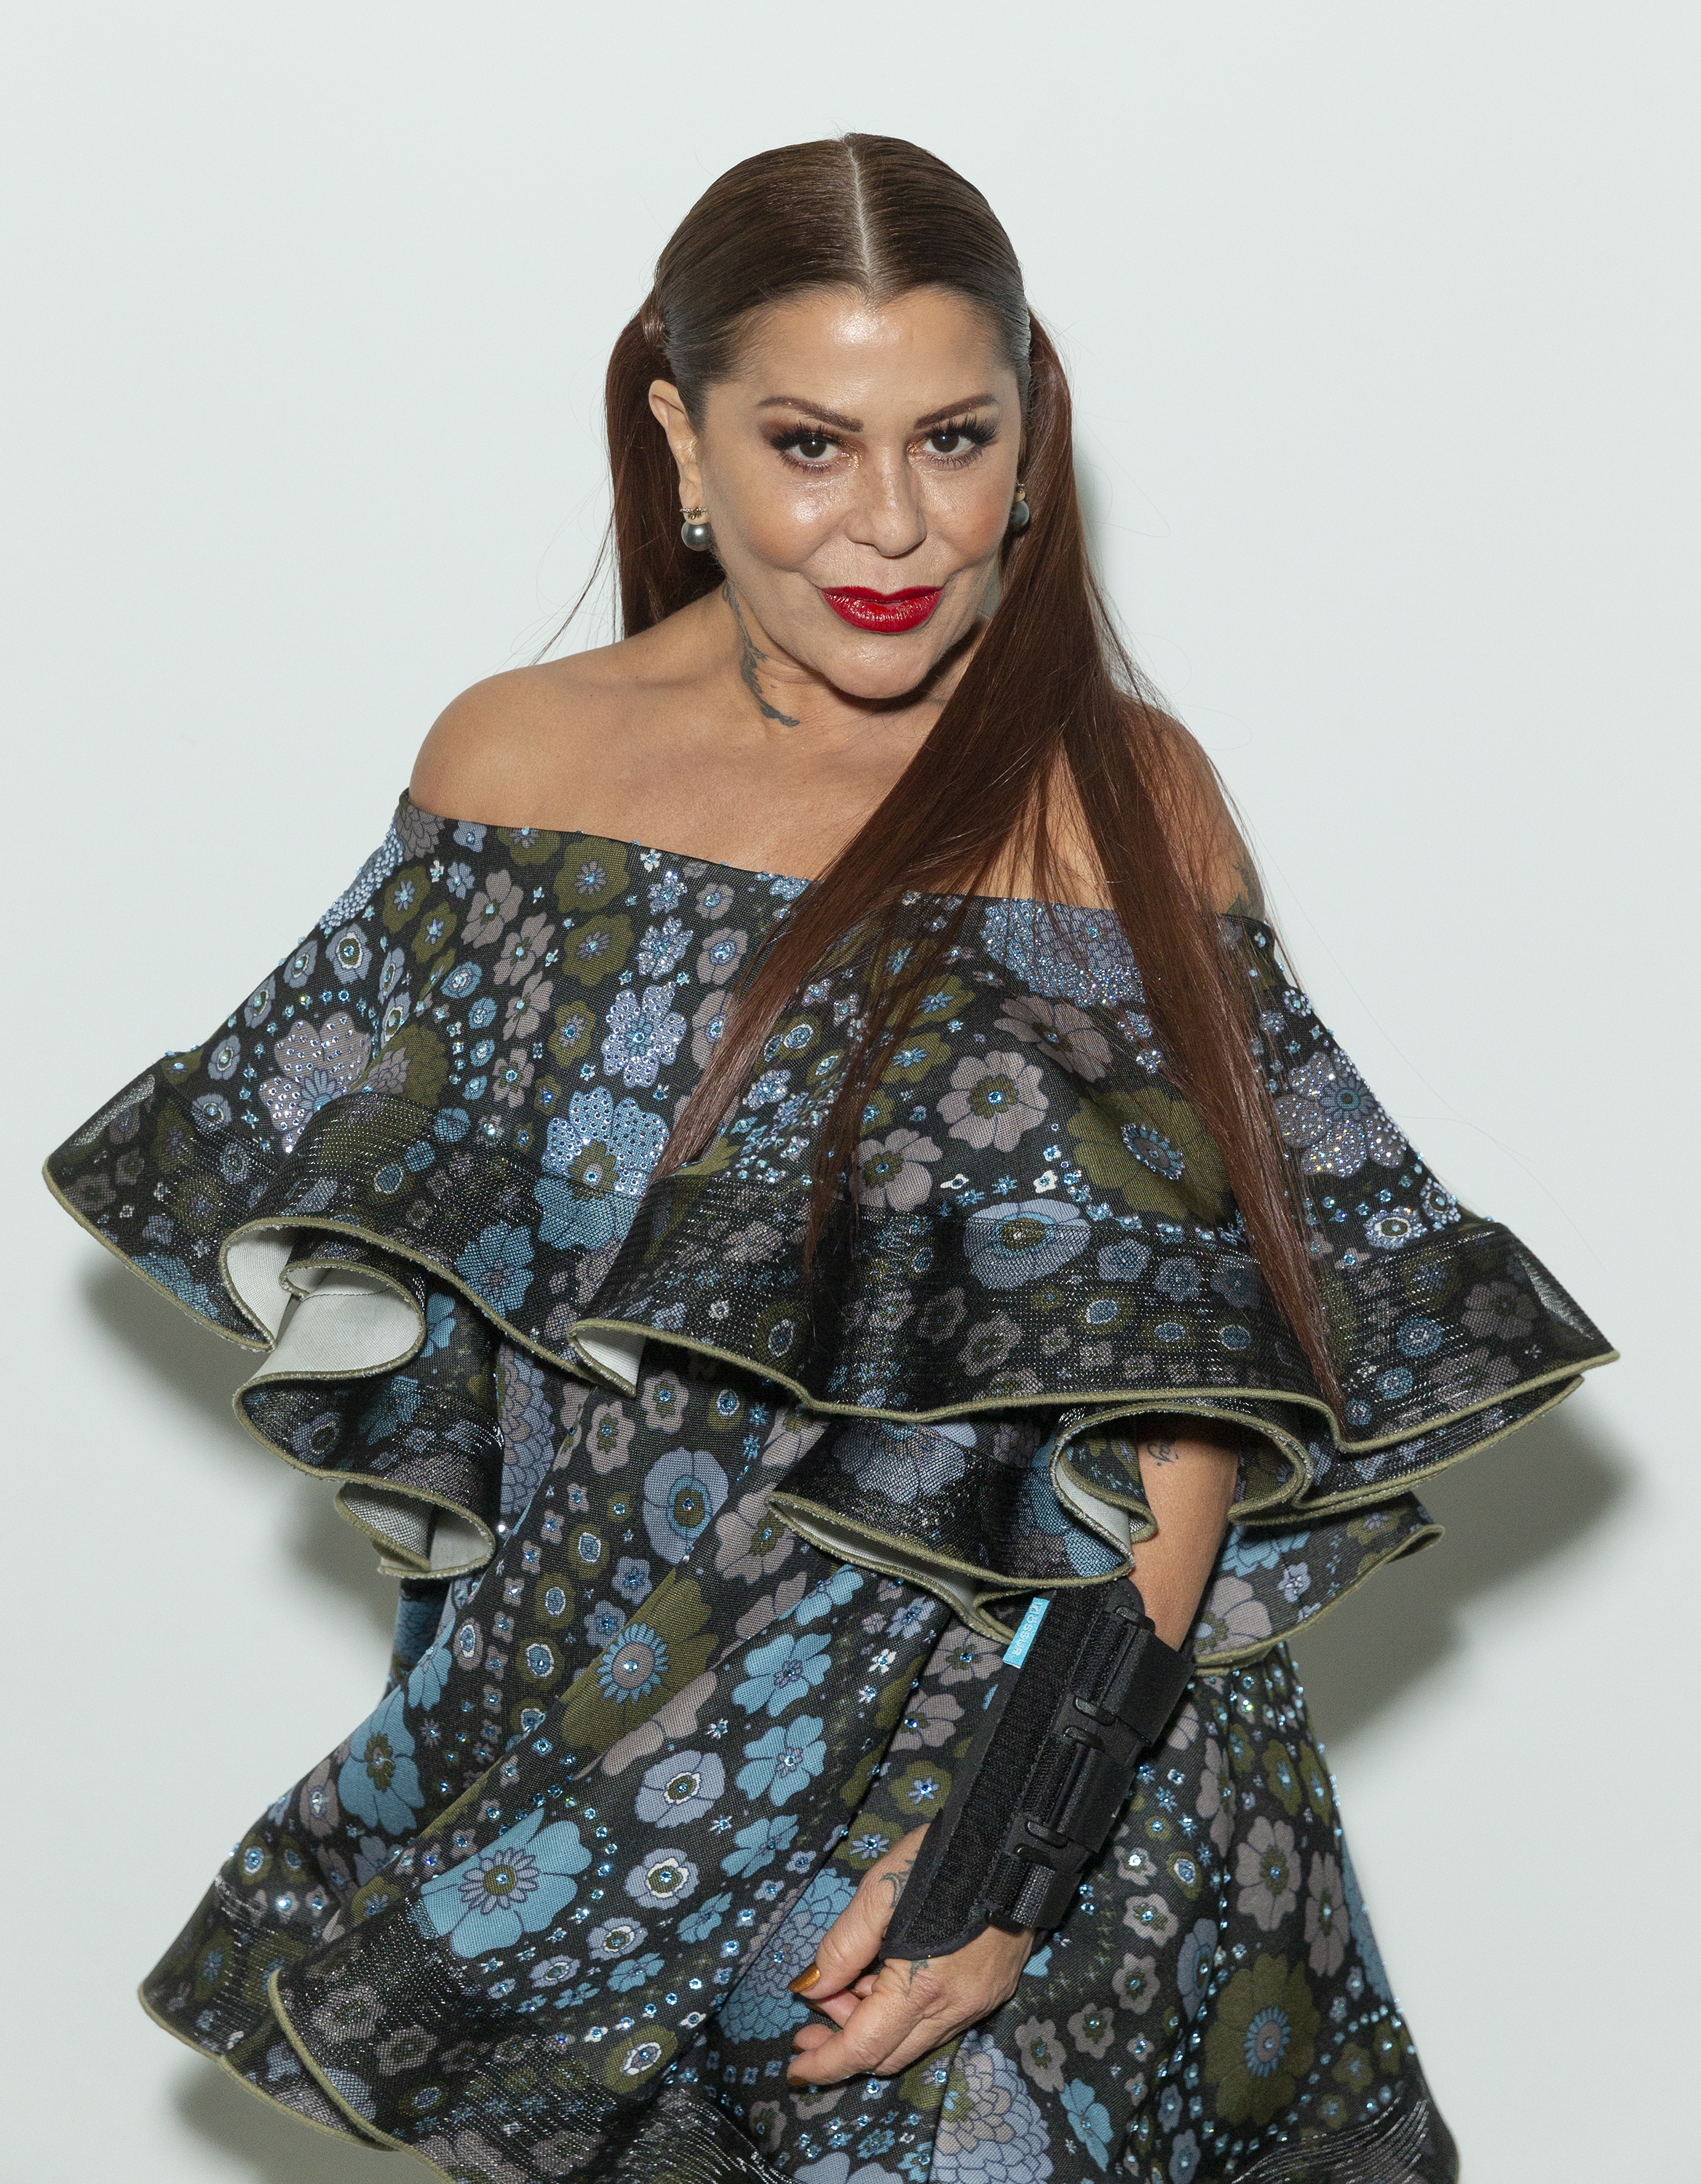 Alejandra Guzman attends runway for Custo Barcelona